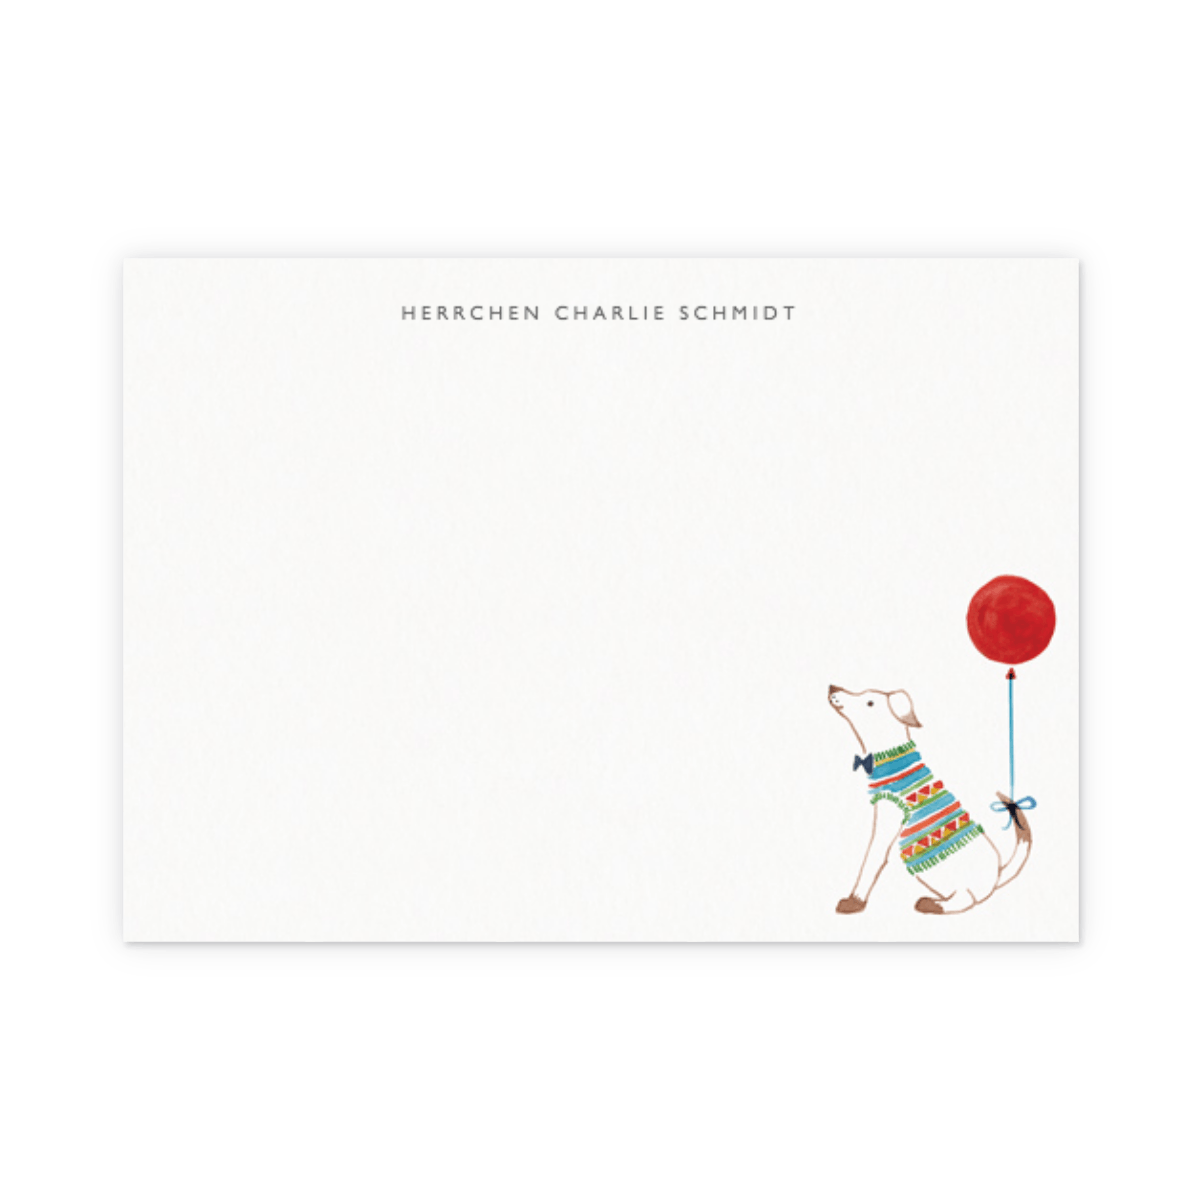 Https%3a%2f%2fwww.papier.com%2fproduct image%2f45053%2f10%2fa dog and his balloon 3119 vorderseite 1534931205.png?ixlib=rb 1.1